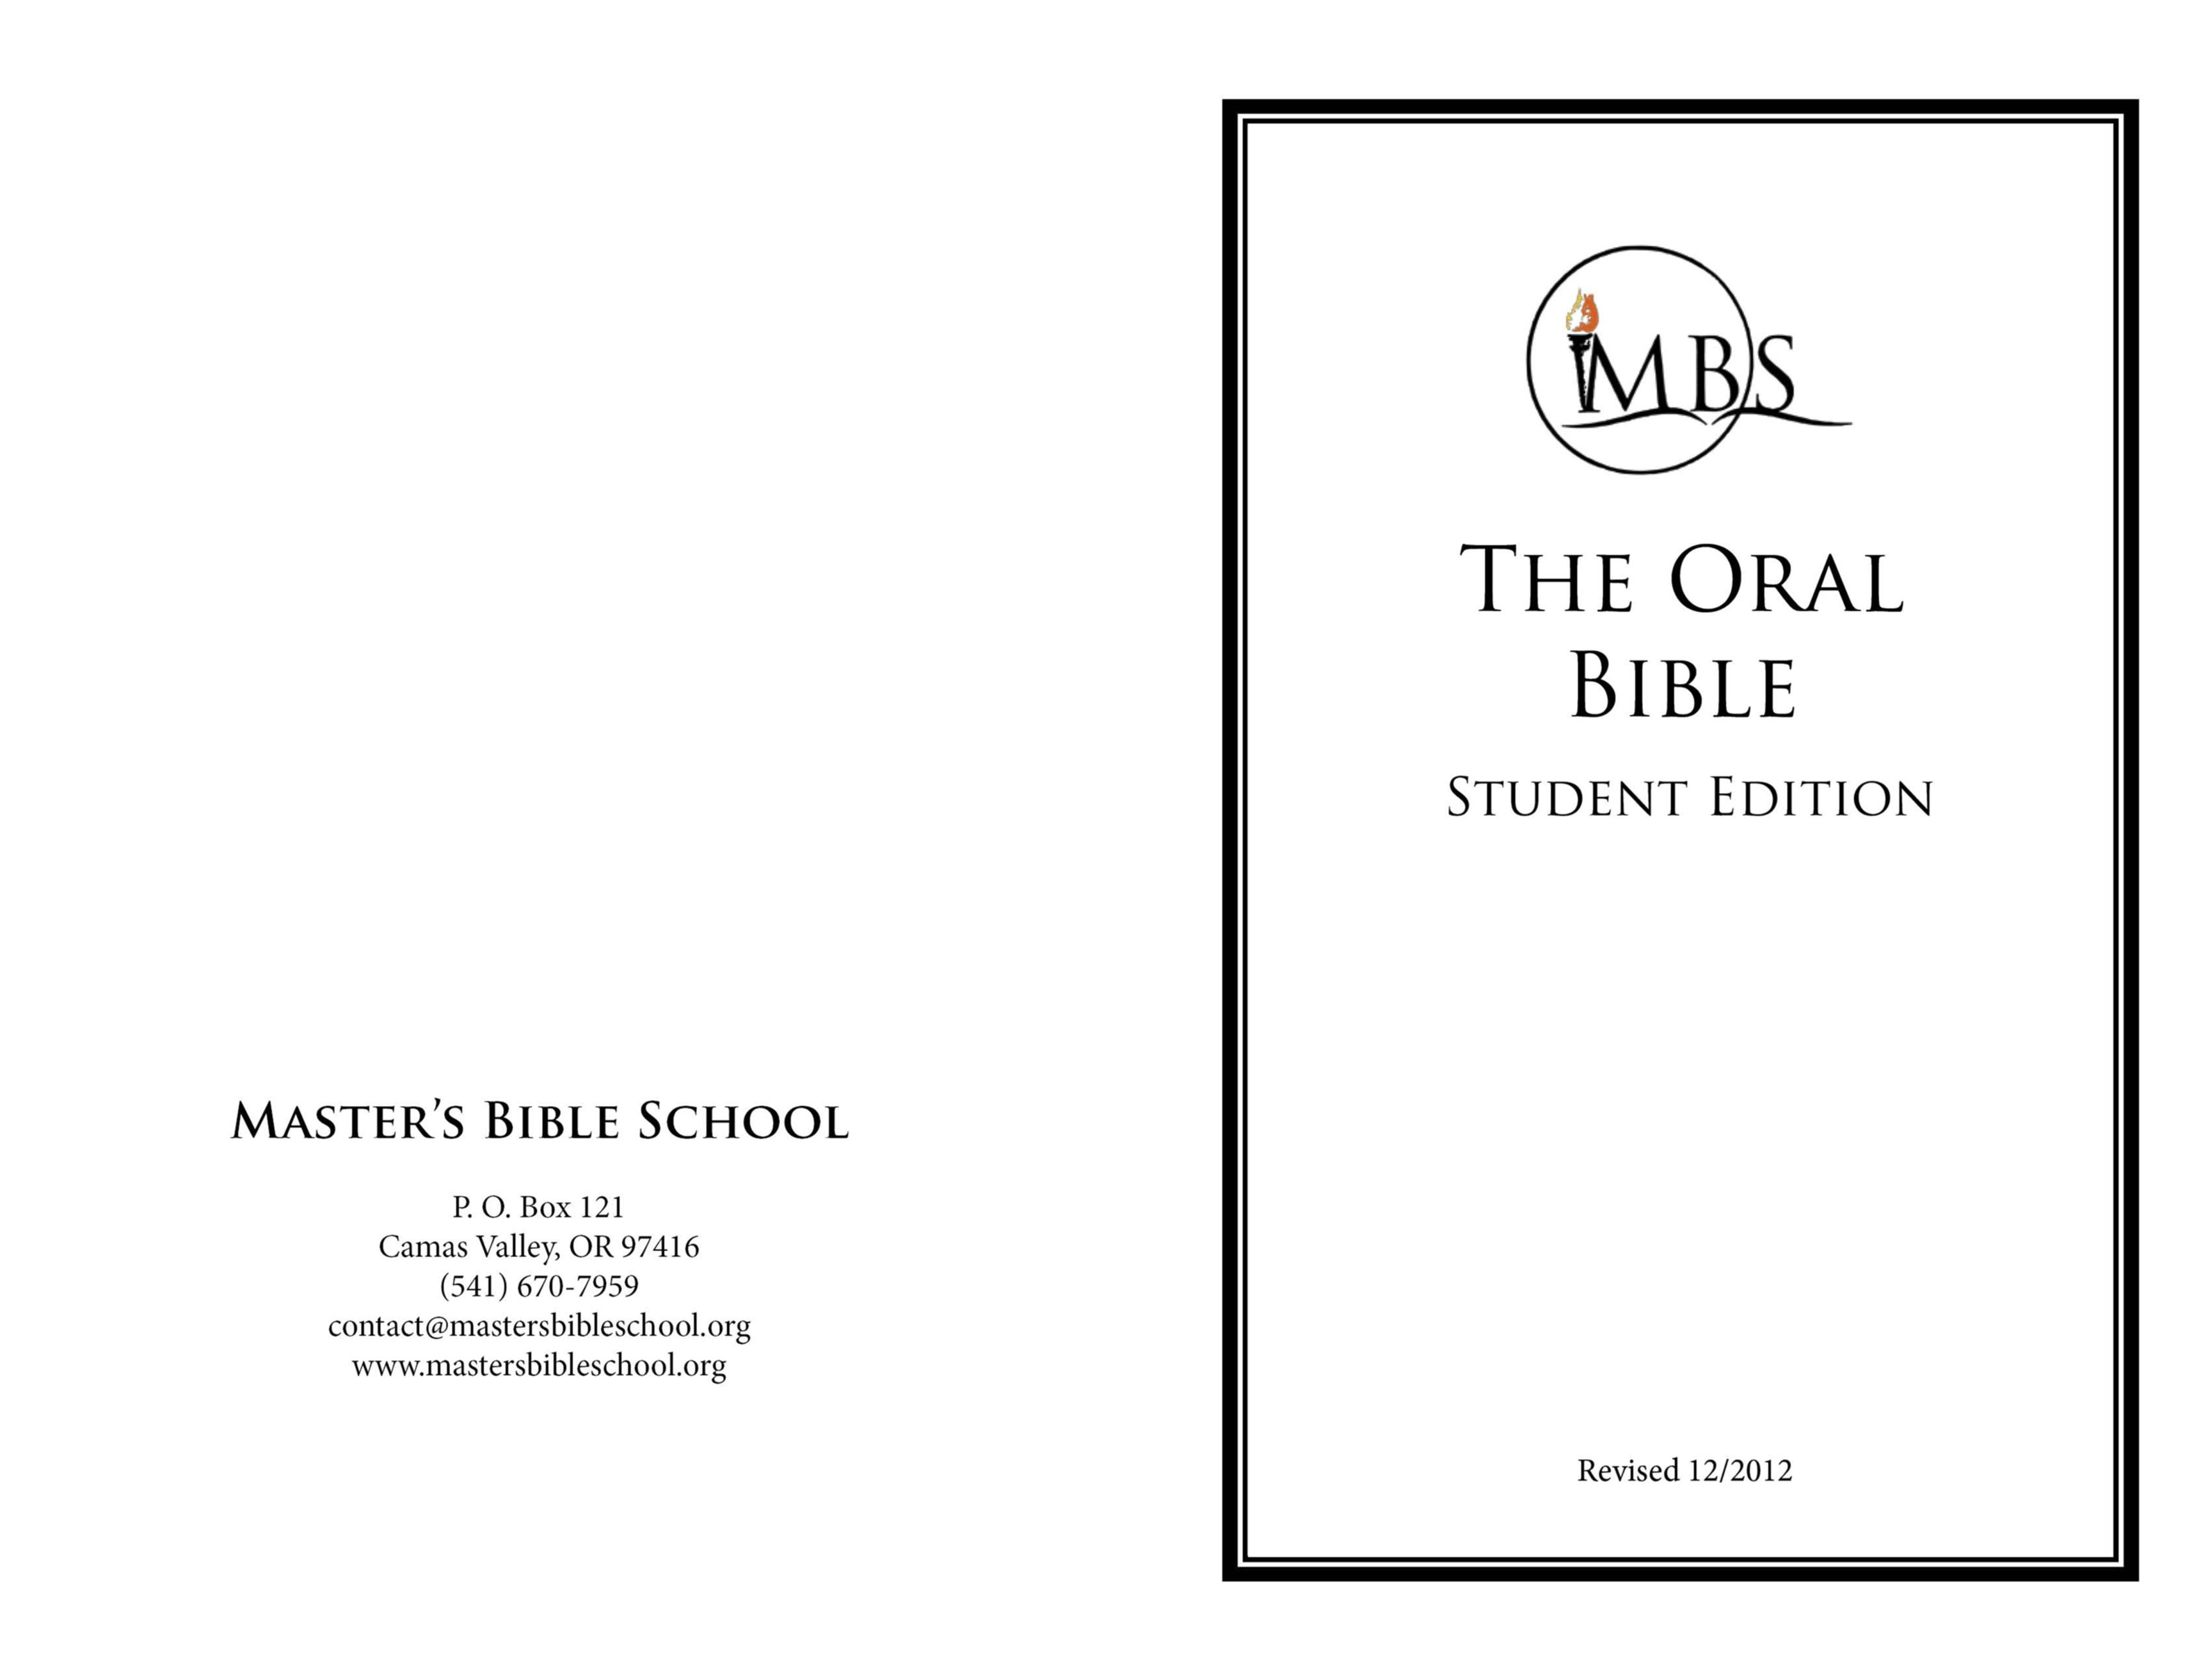 The Oral Bible - Student Edition cover image